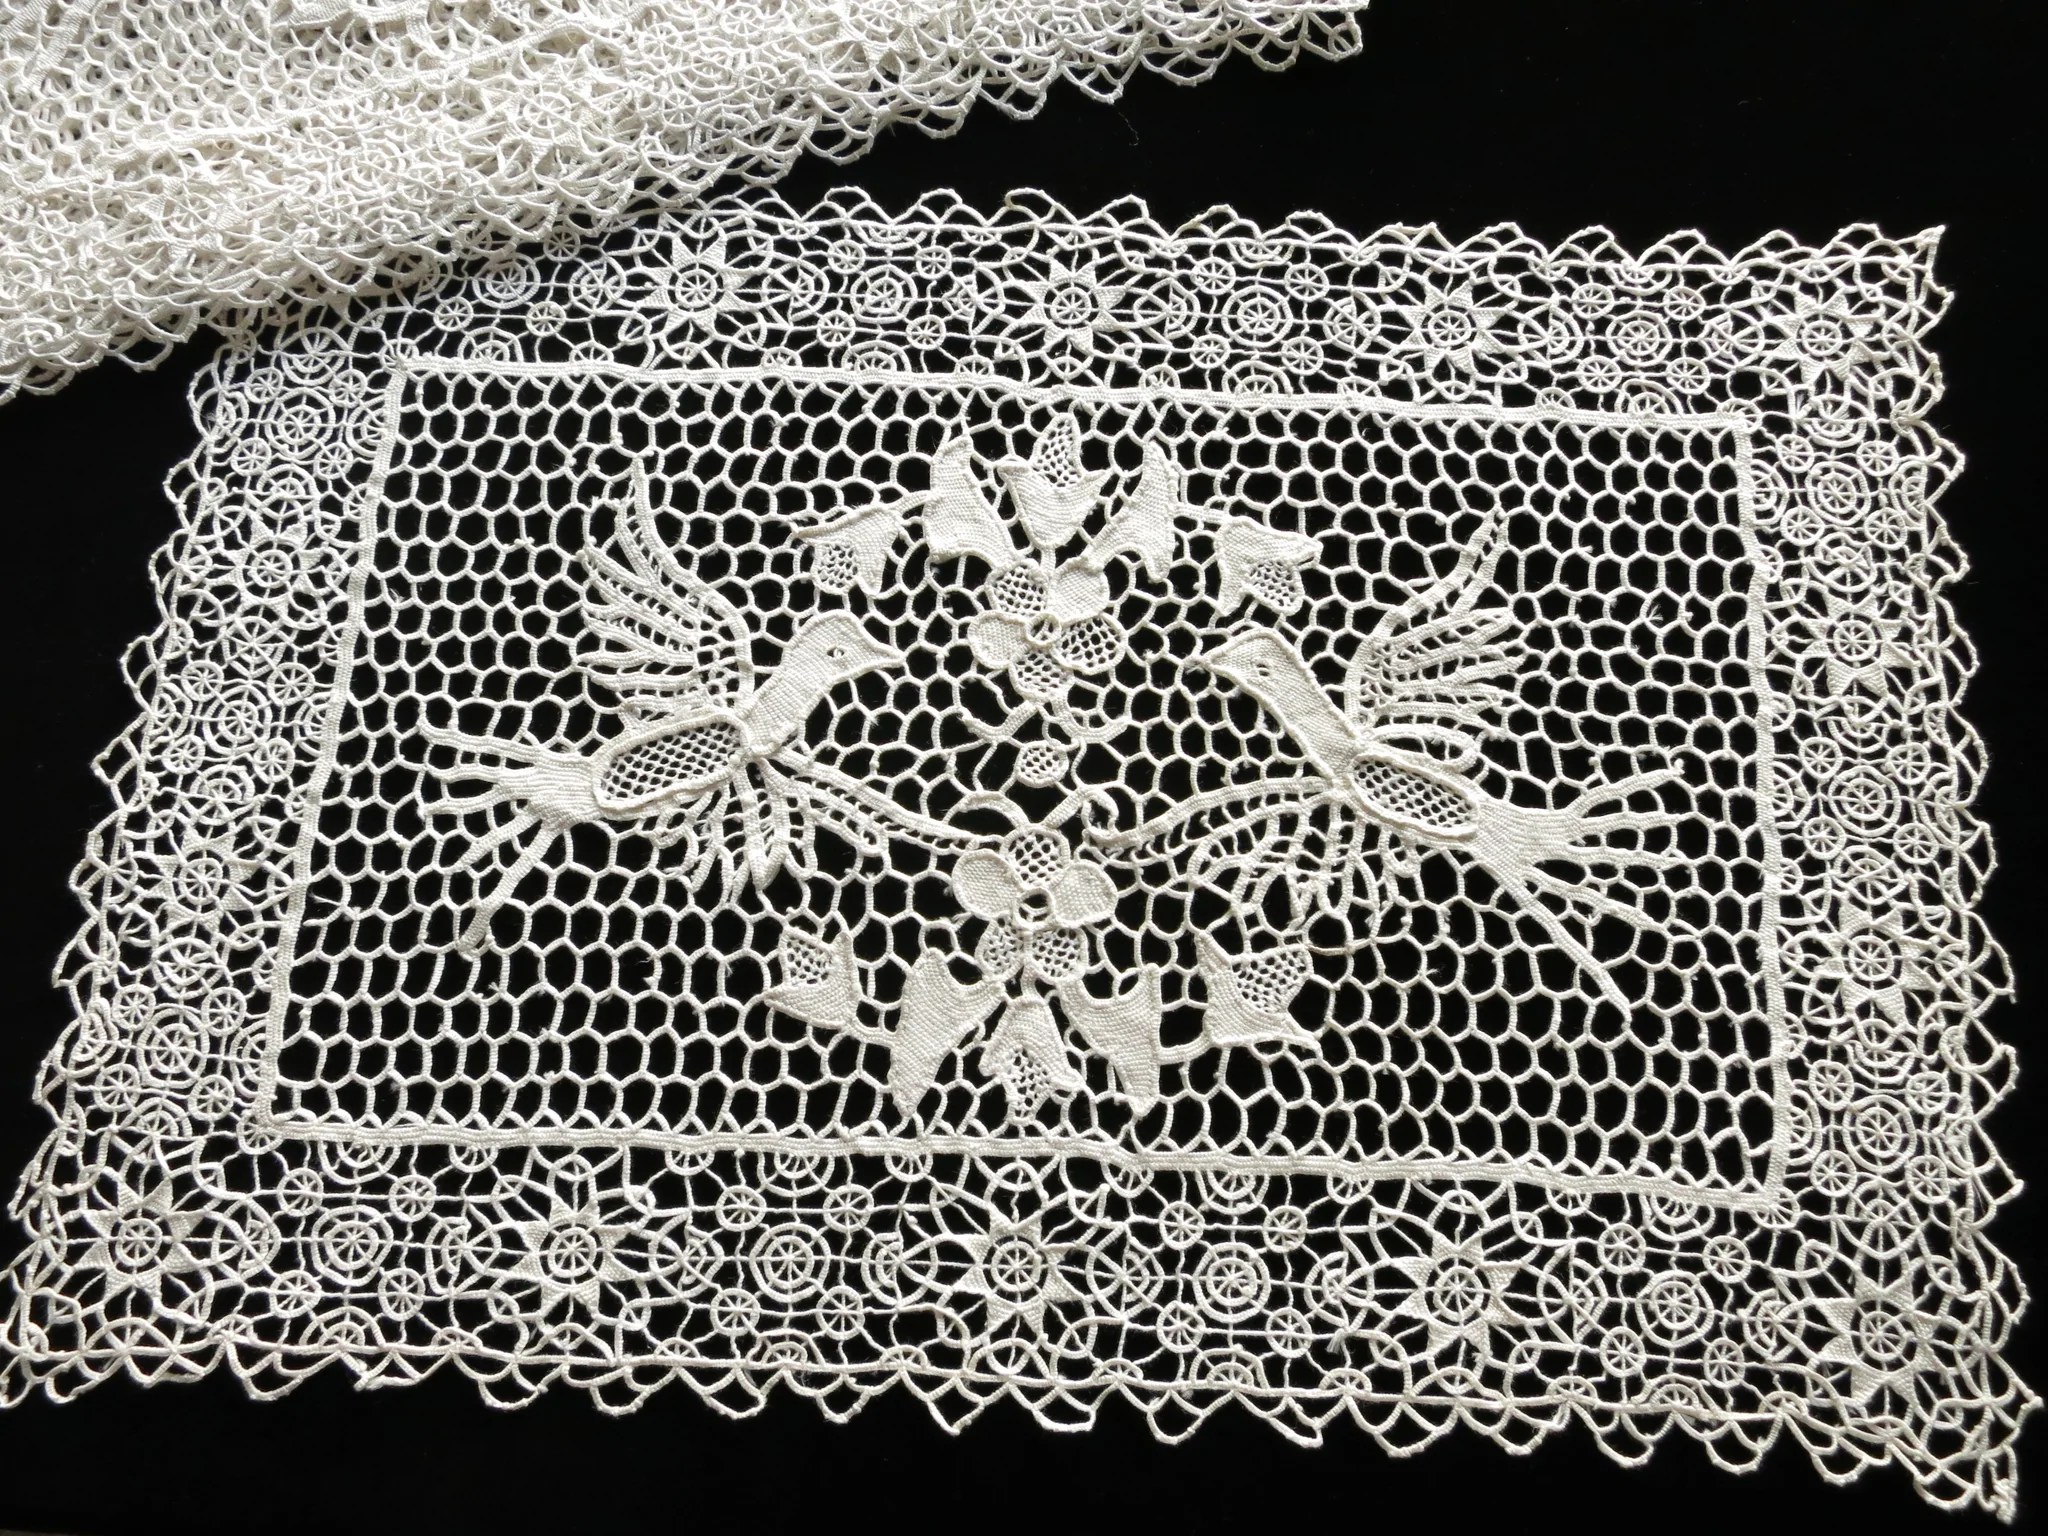 birds in needle lace